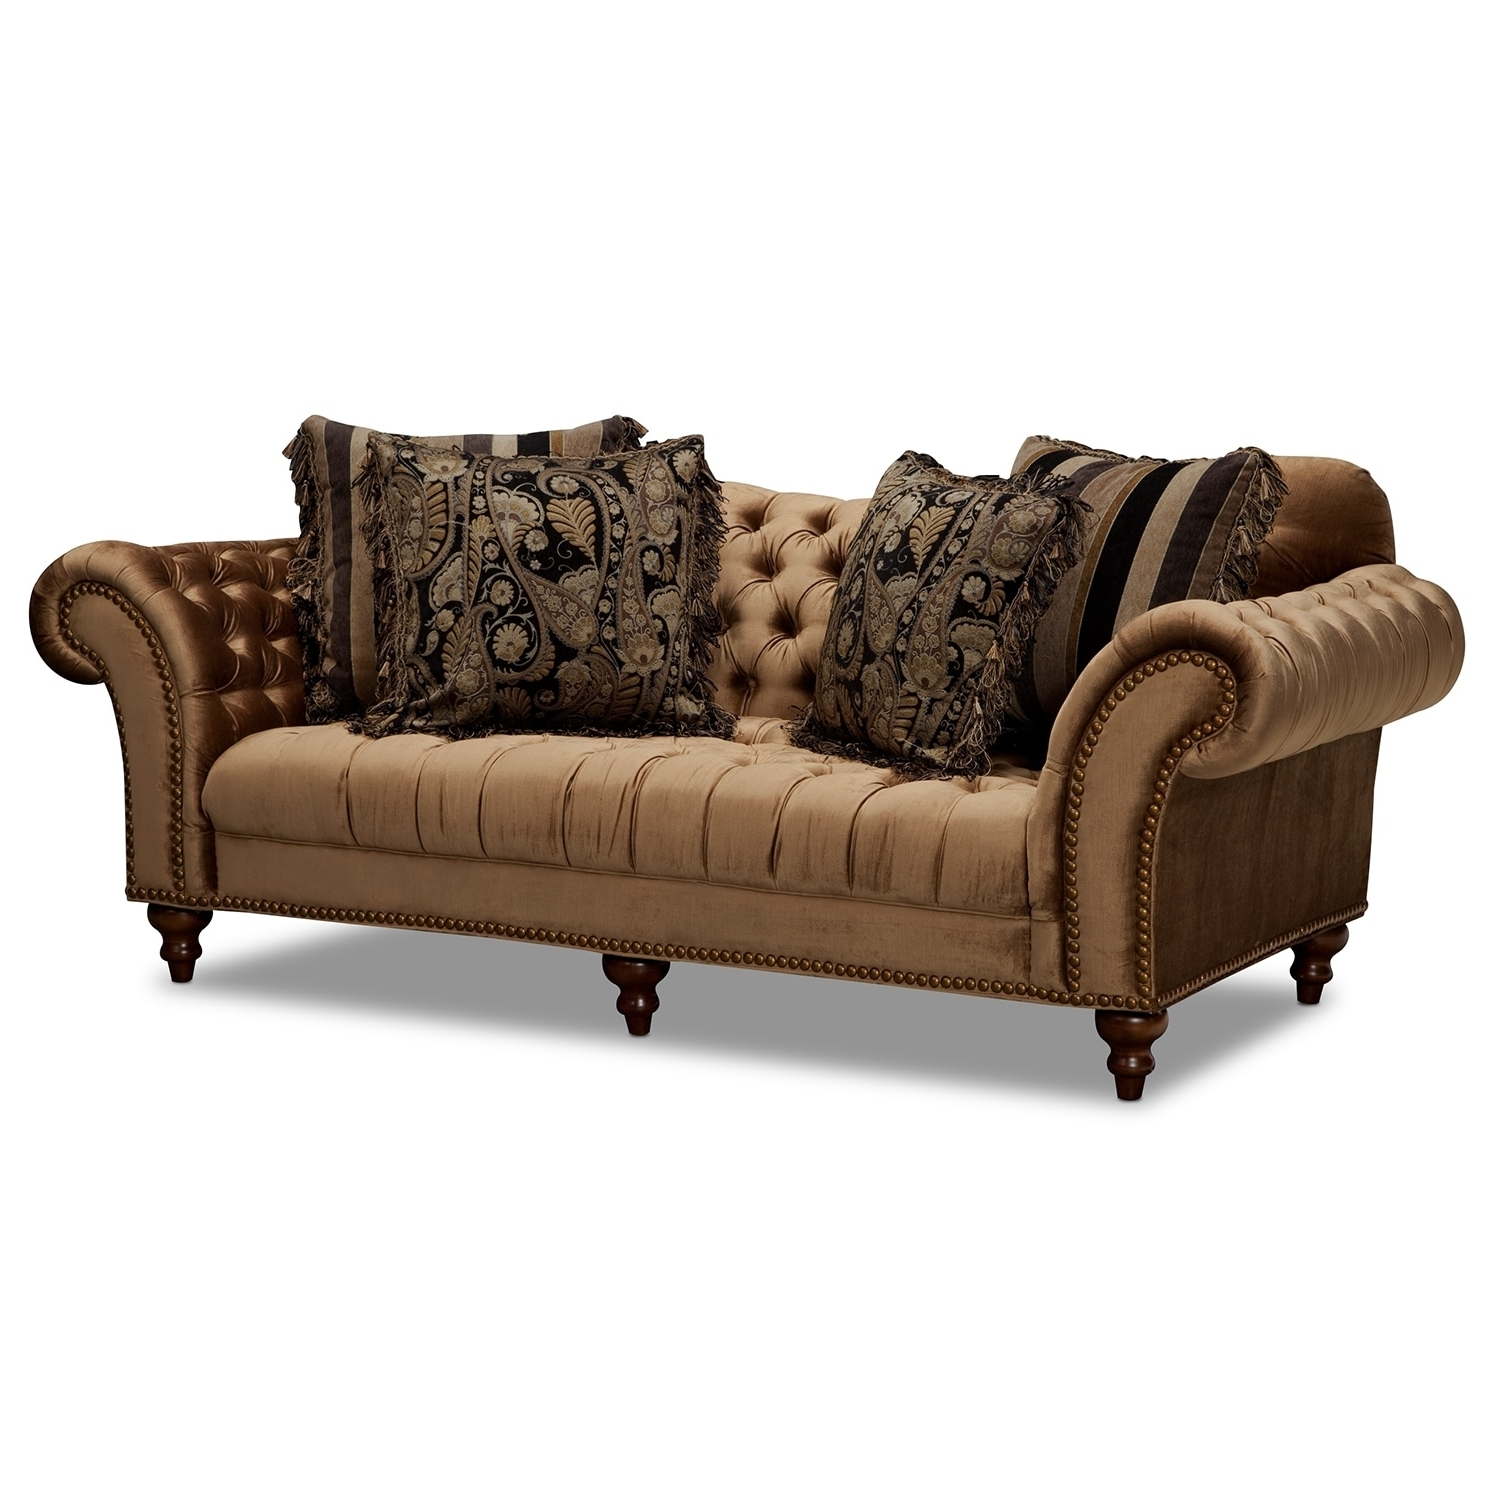 Value City Furniture And Mattresses With Trendy Value City Sofas (View 7 of 15)